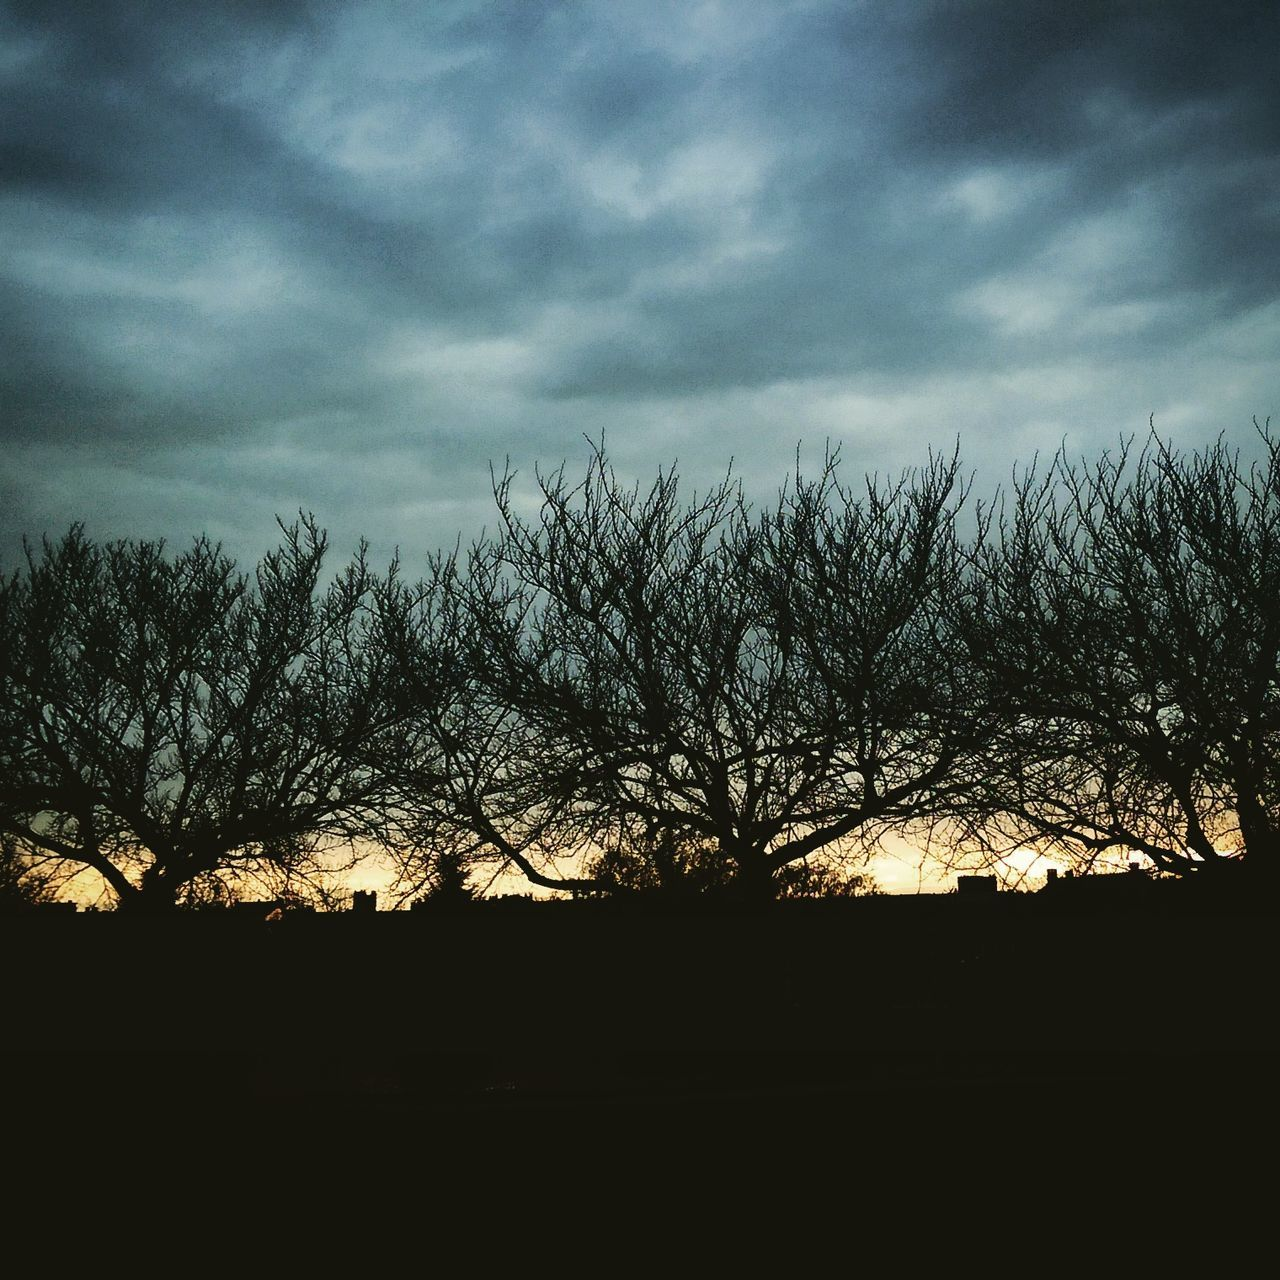 silhouette, sky, tree, nature, beauty in nature, bare tree, tranquility, scenics, cloud - sky, tranquil scene, landscape, no people, outdoors, branch, sunset, day